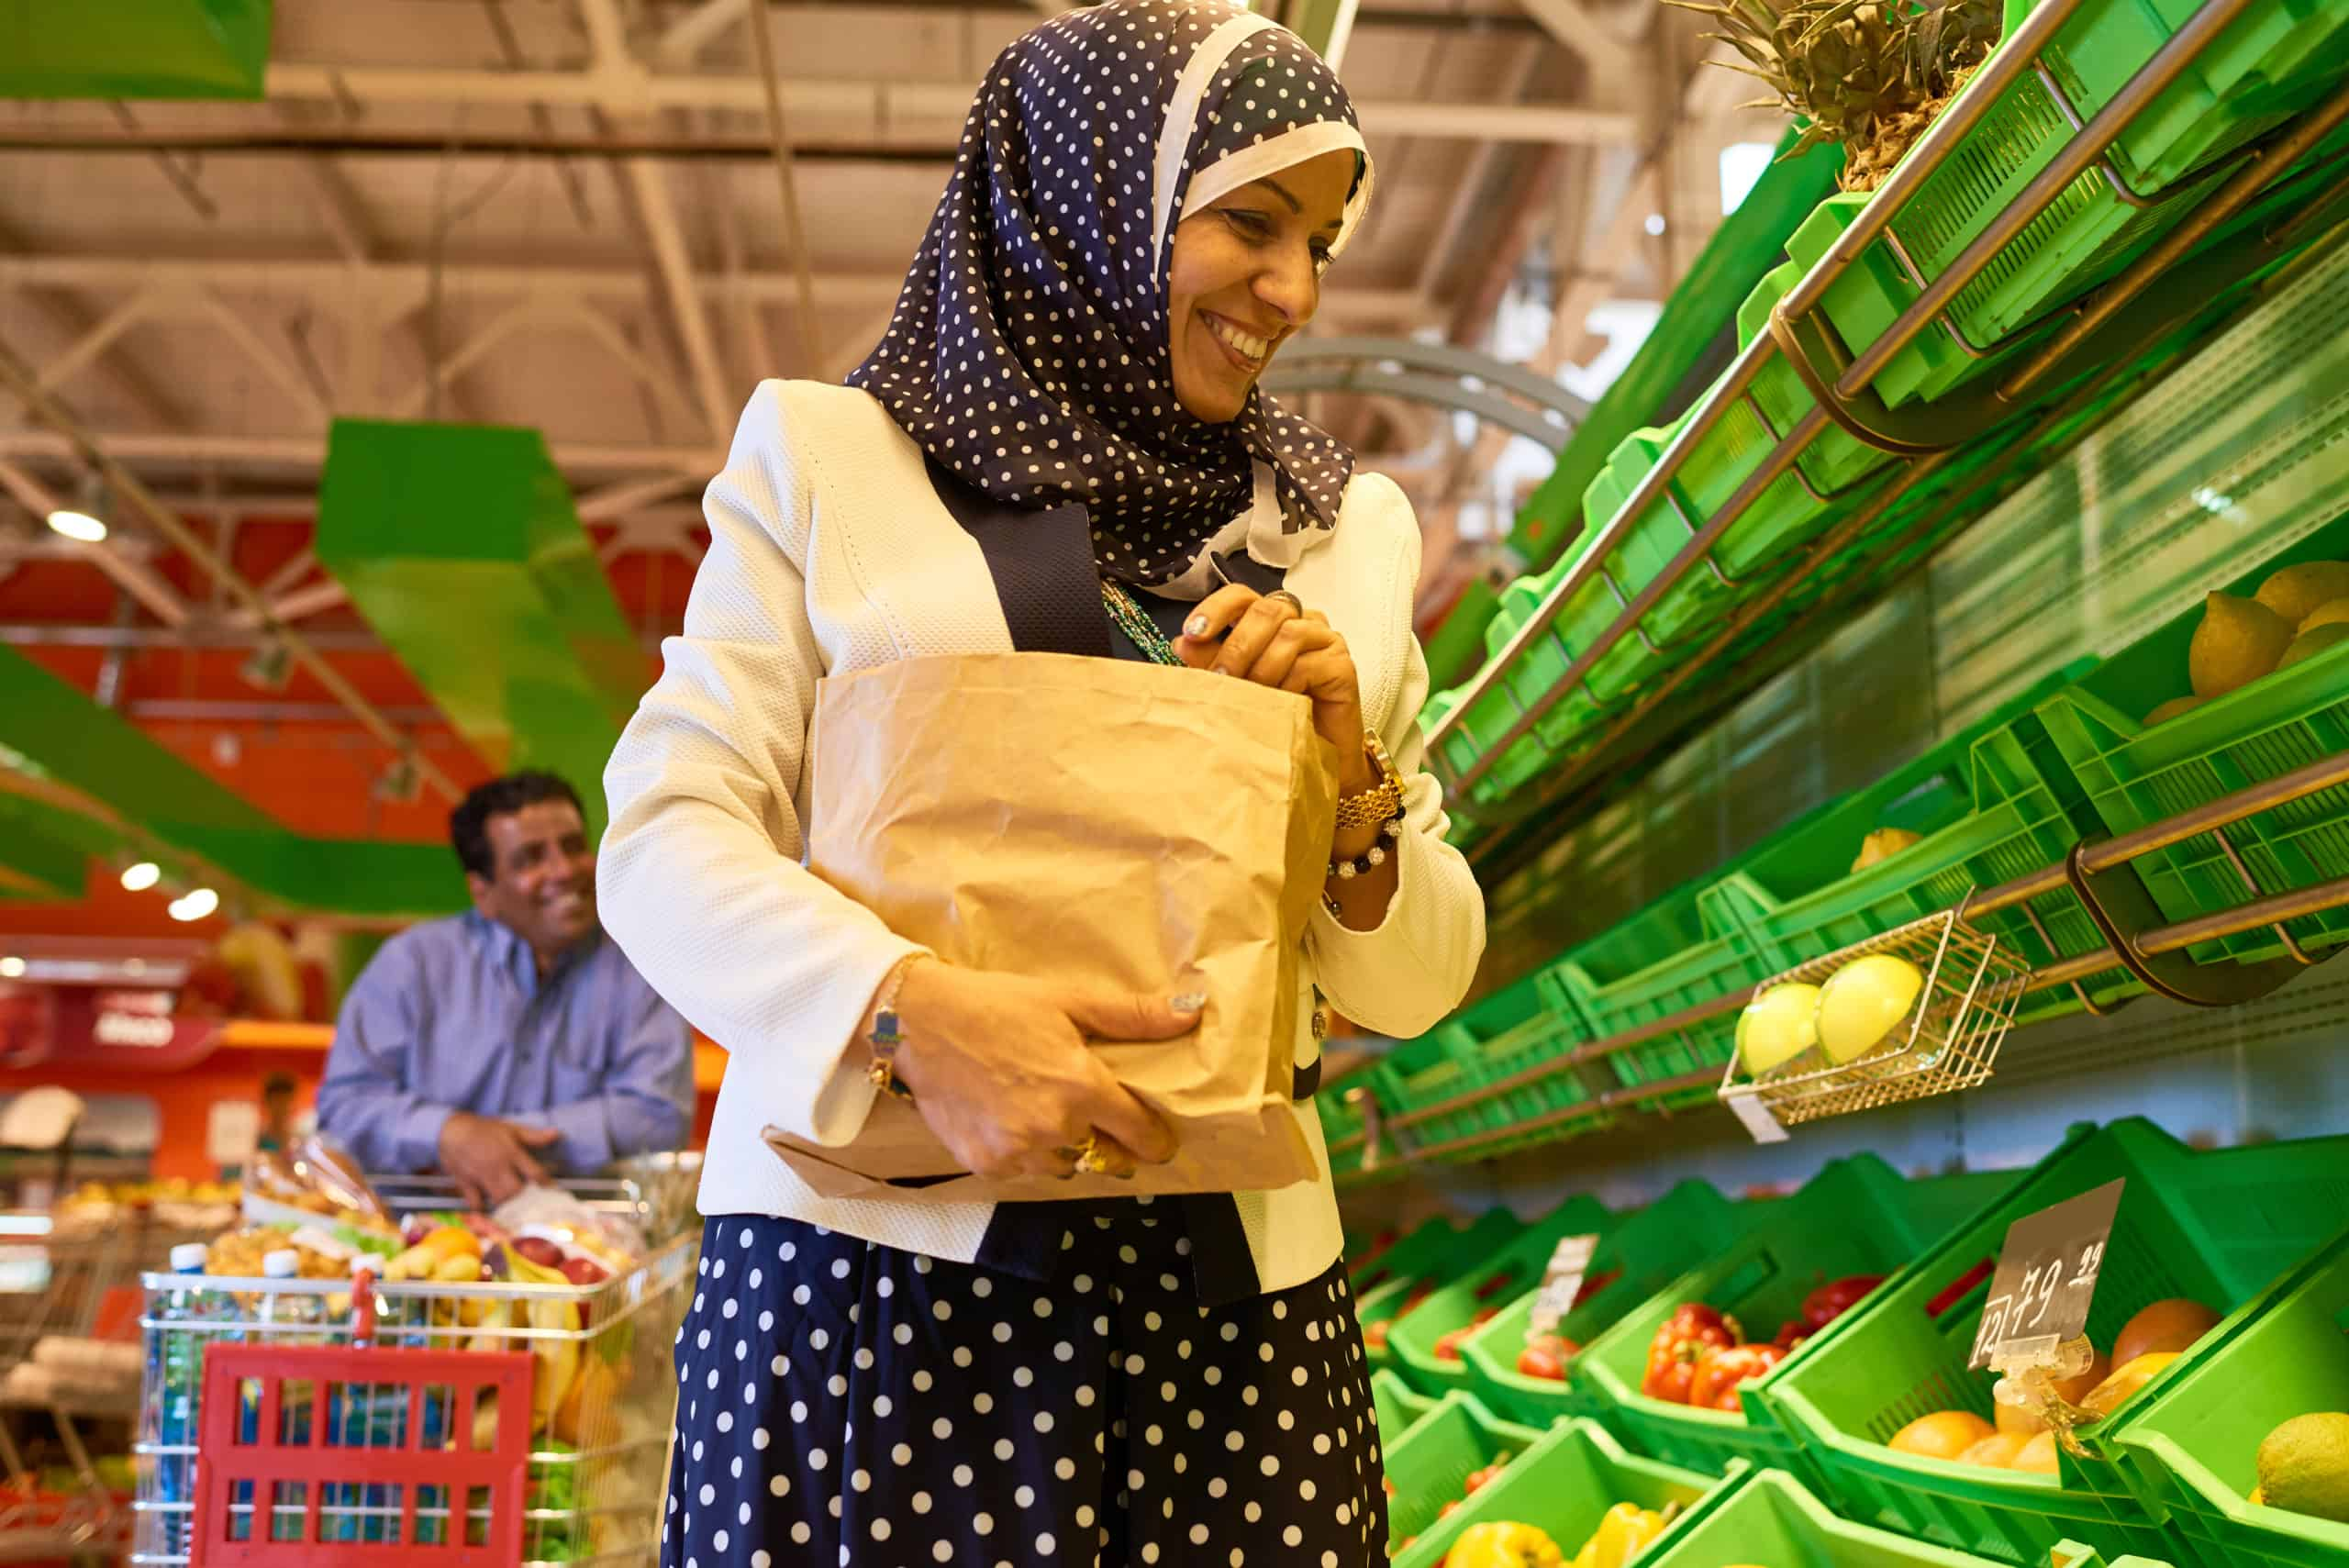 GCC food industry: opportunities for supply chain consolidation